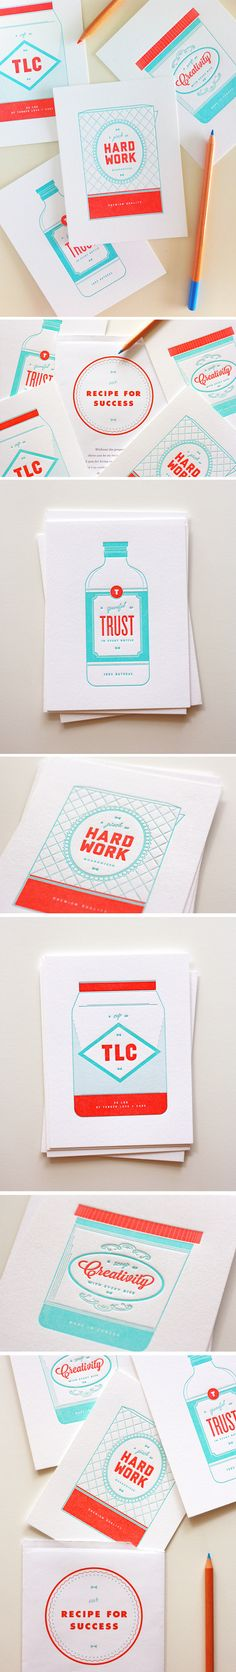 Recipe for Success Series One Plus One Design #Stationery #Design #Illustration in Our Work